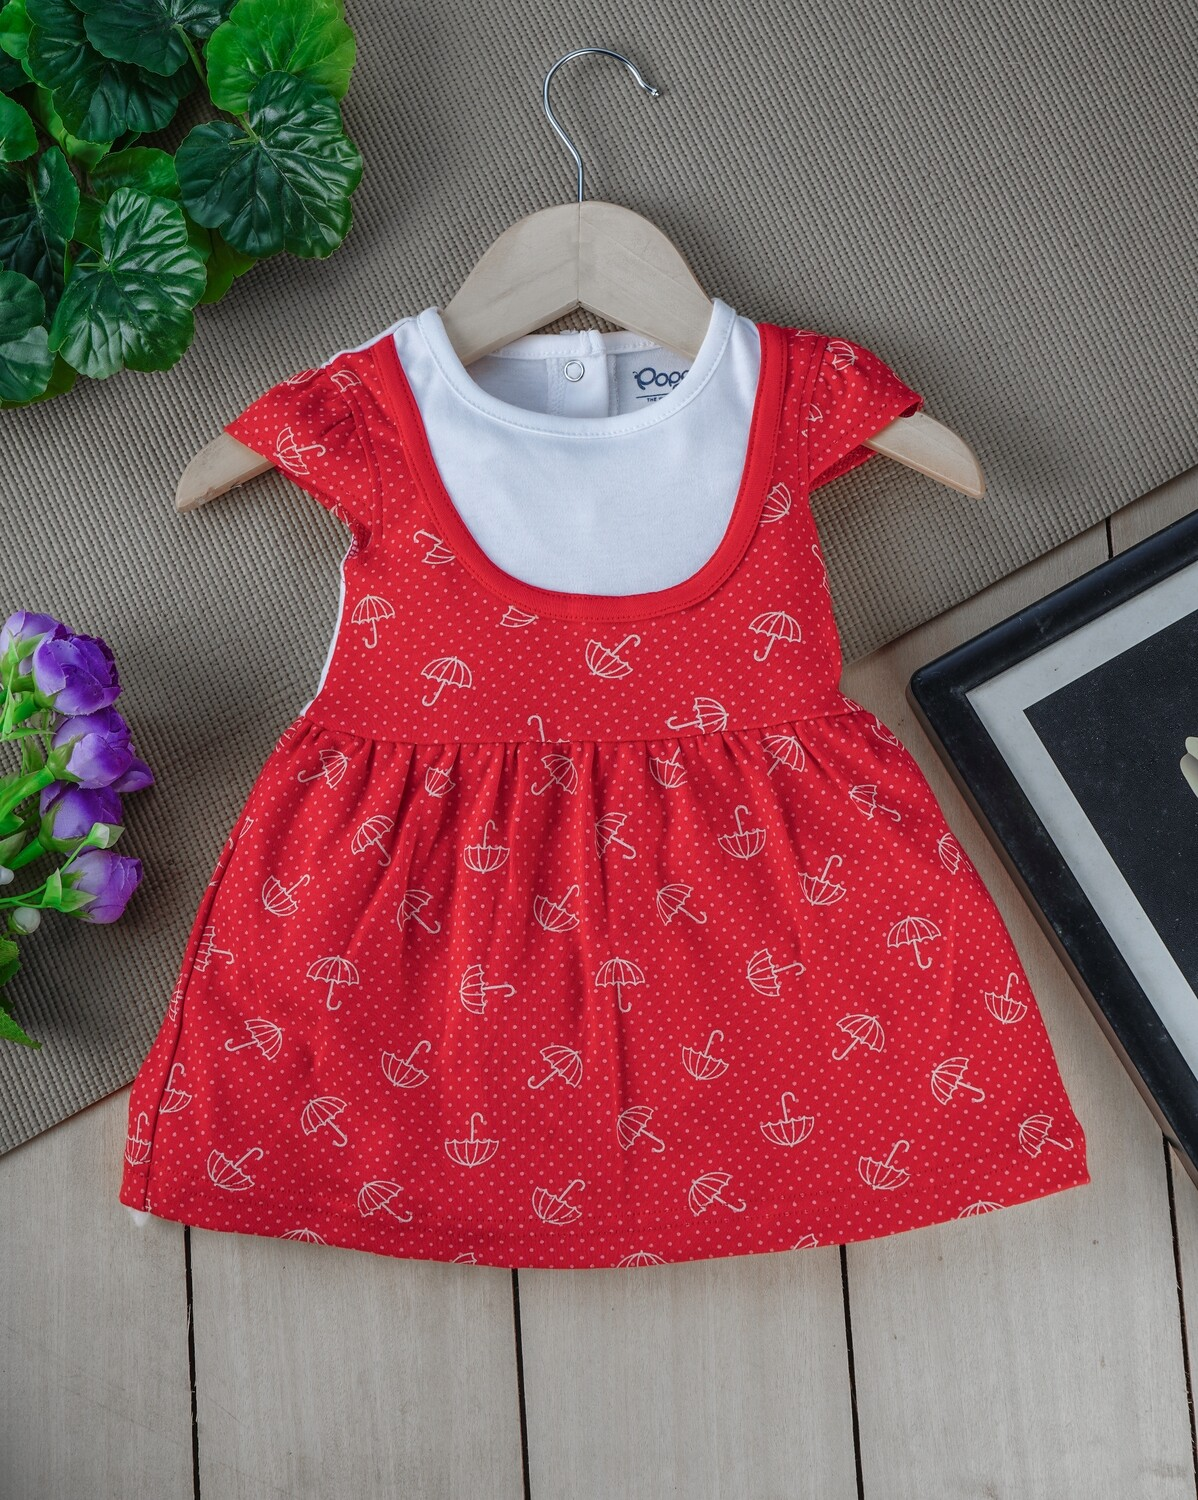 Sophic True Red Cap Sleeves Umbrella Printed Cotton Frock with Bloomer for Girls